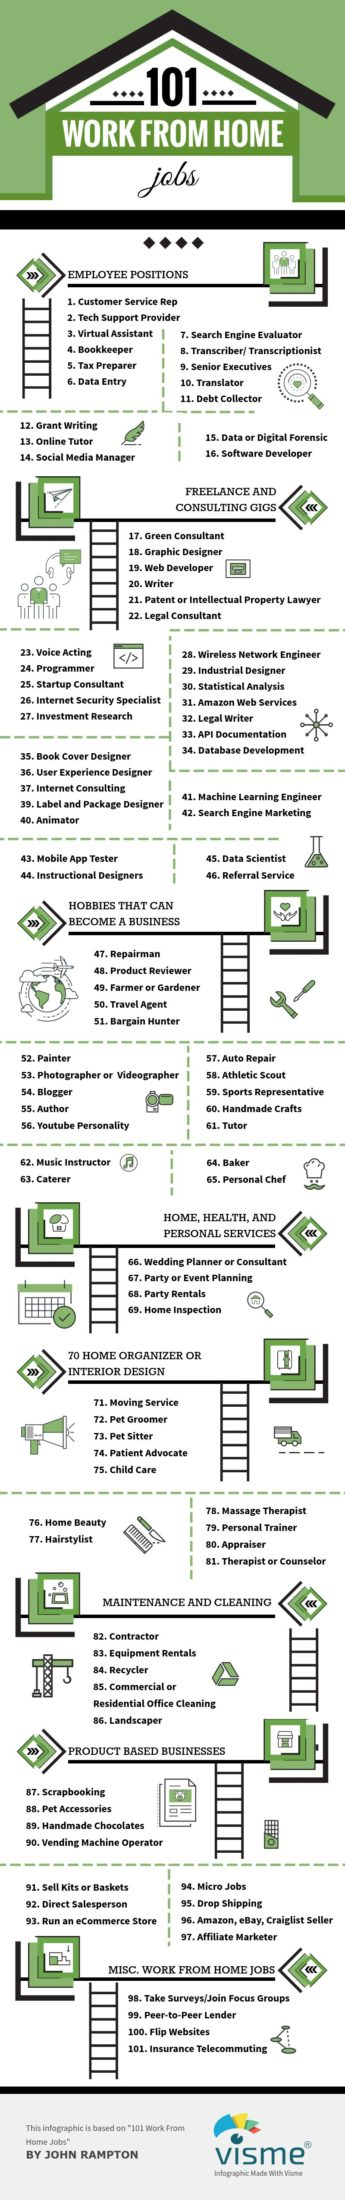 101 Work from home jobs